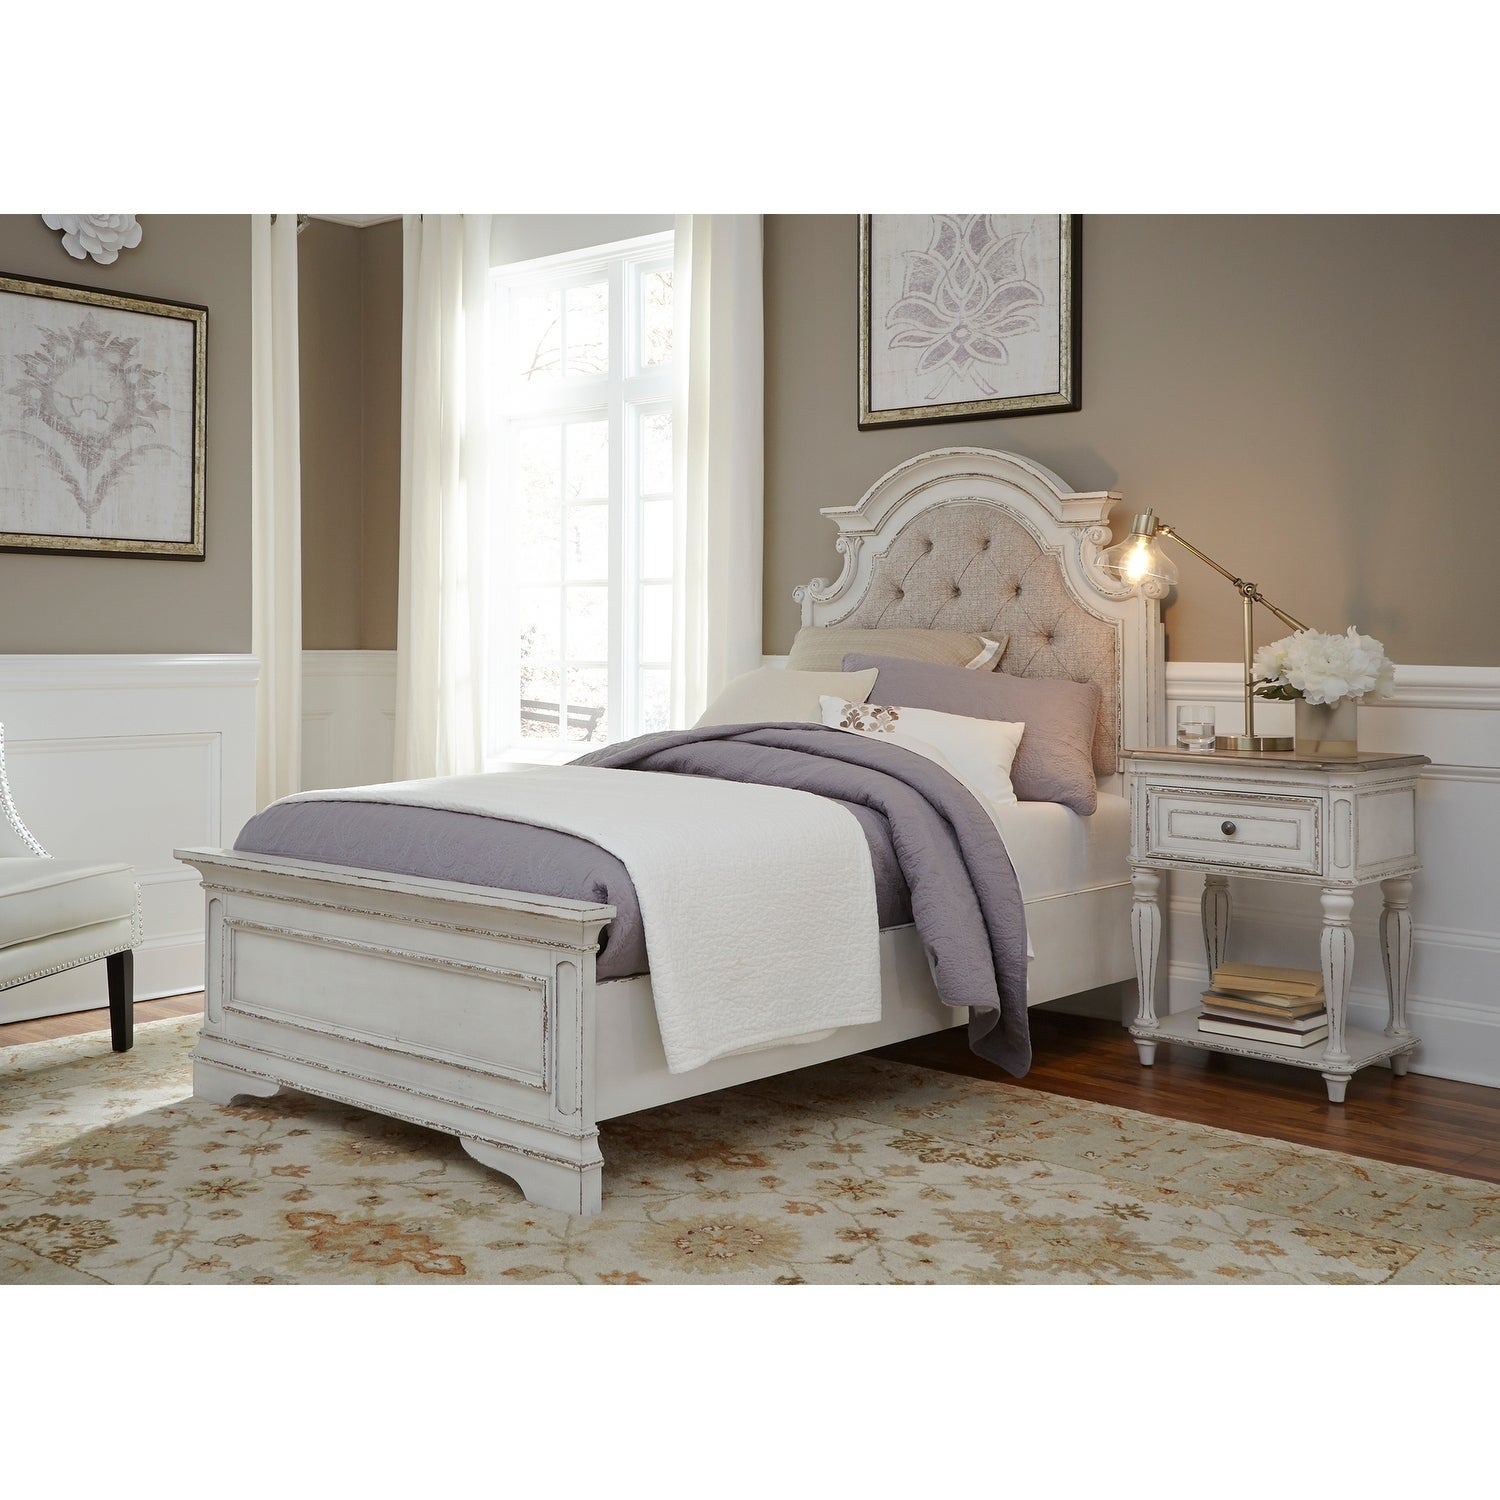 Magnolia Manor Antique White Upholstered Bed